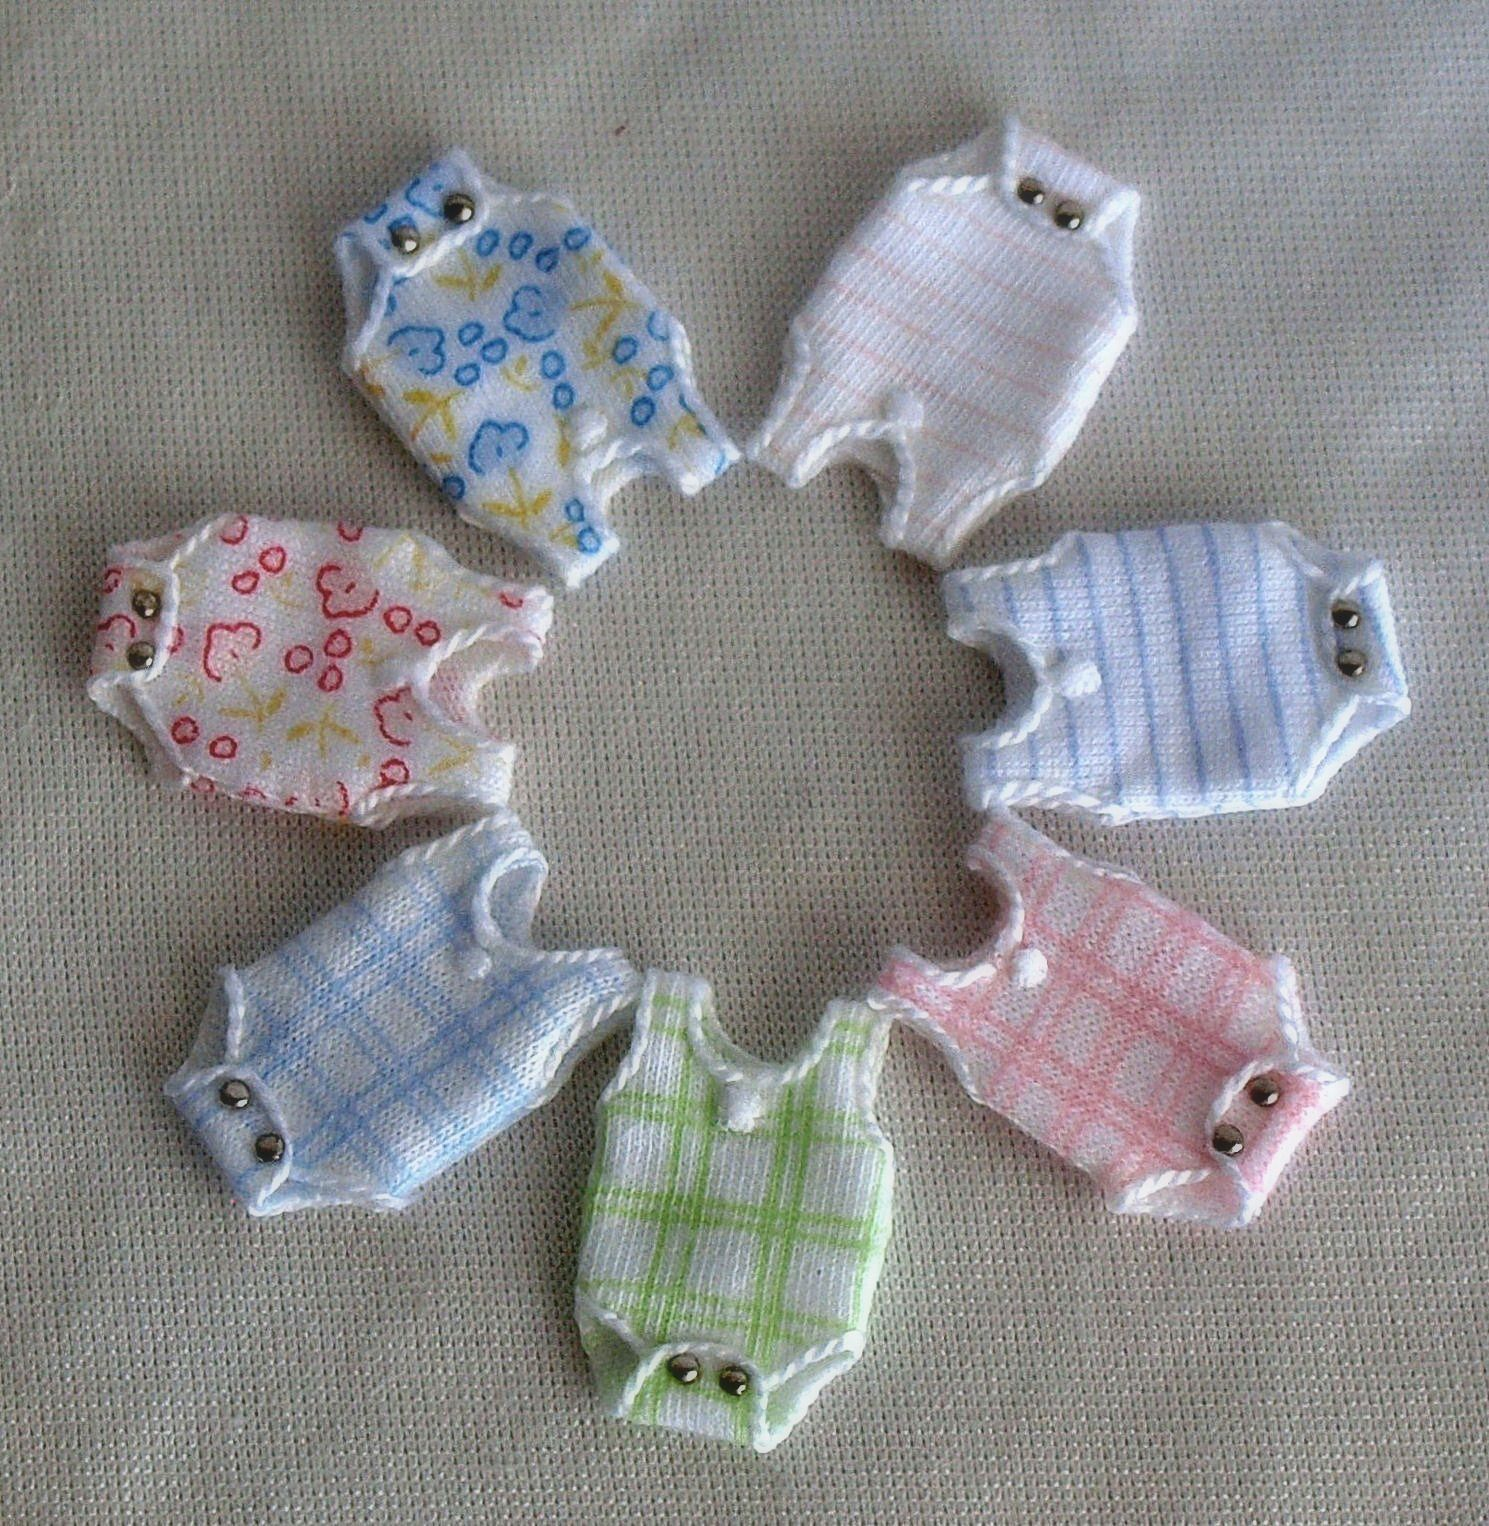 all sorts of miniature doll clothes and miniature items